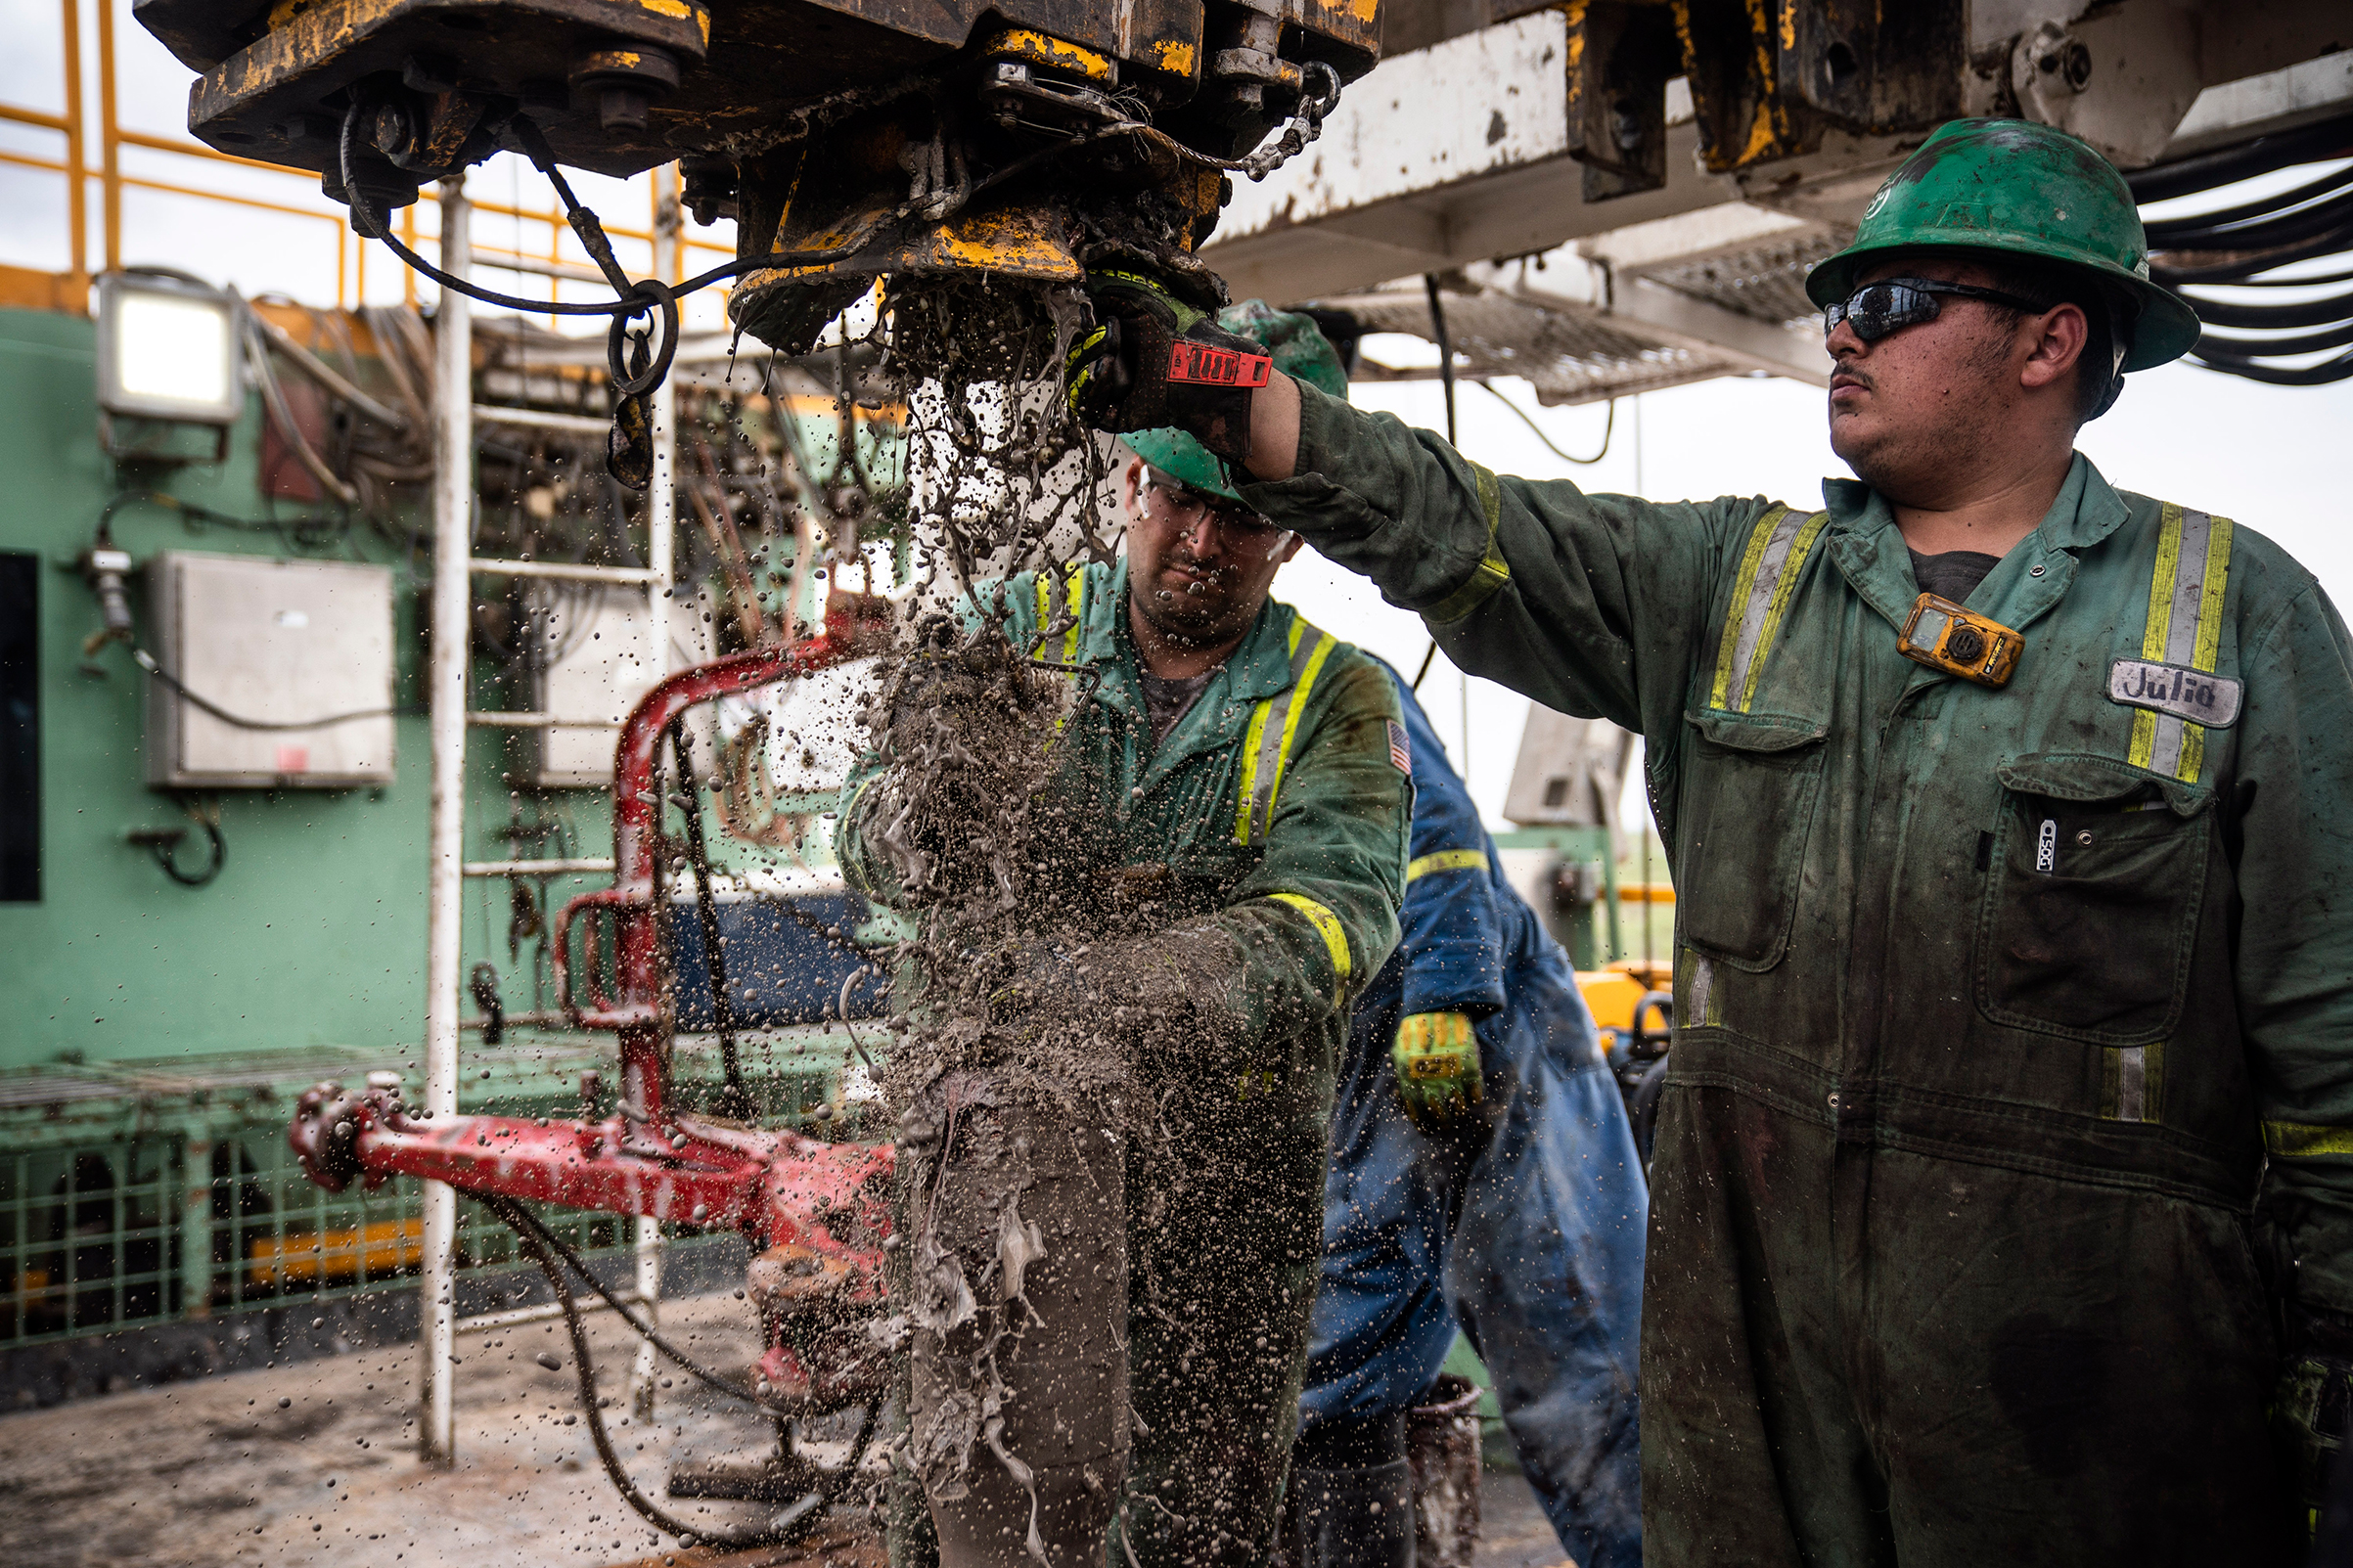 Oil workers, known as roughnecks, extracting oil at a Midland rig in May 2018; many laborers earn six-figure salaries because of high demand